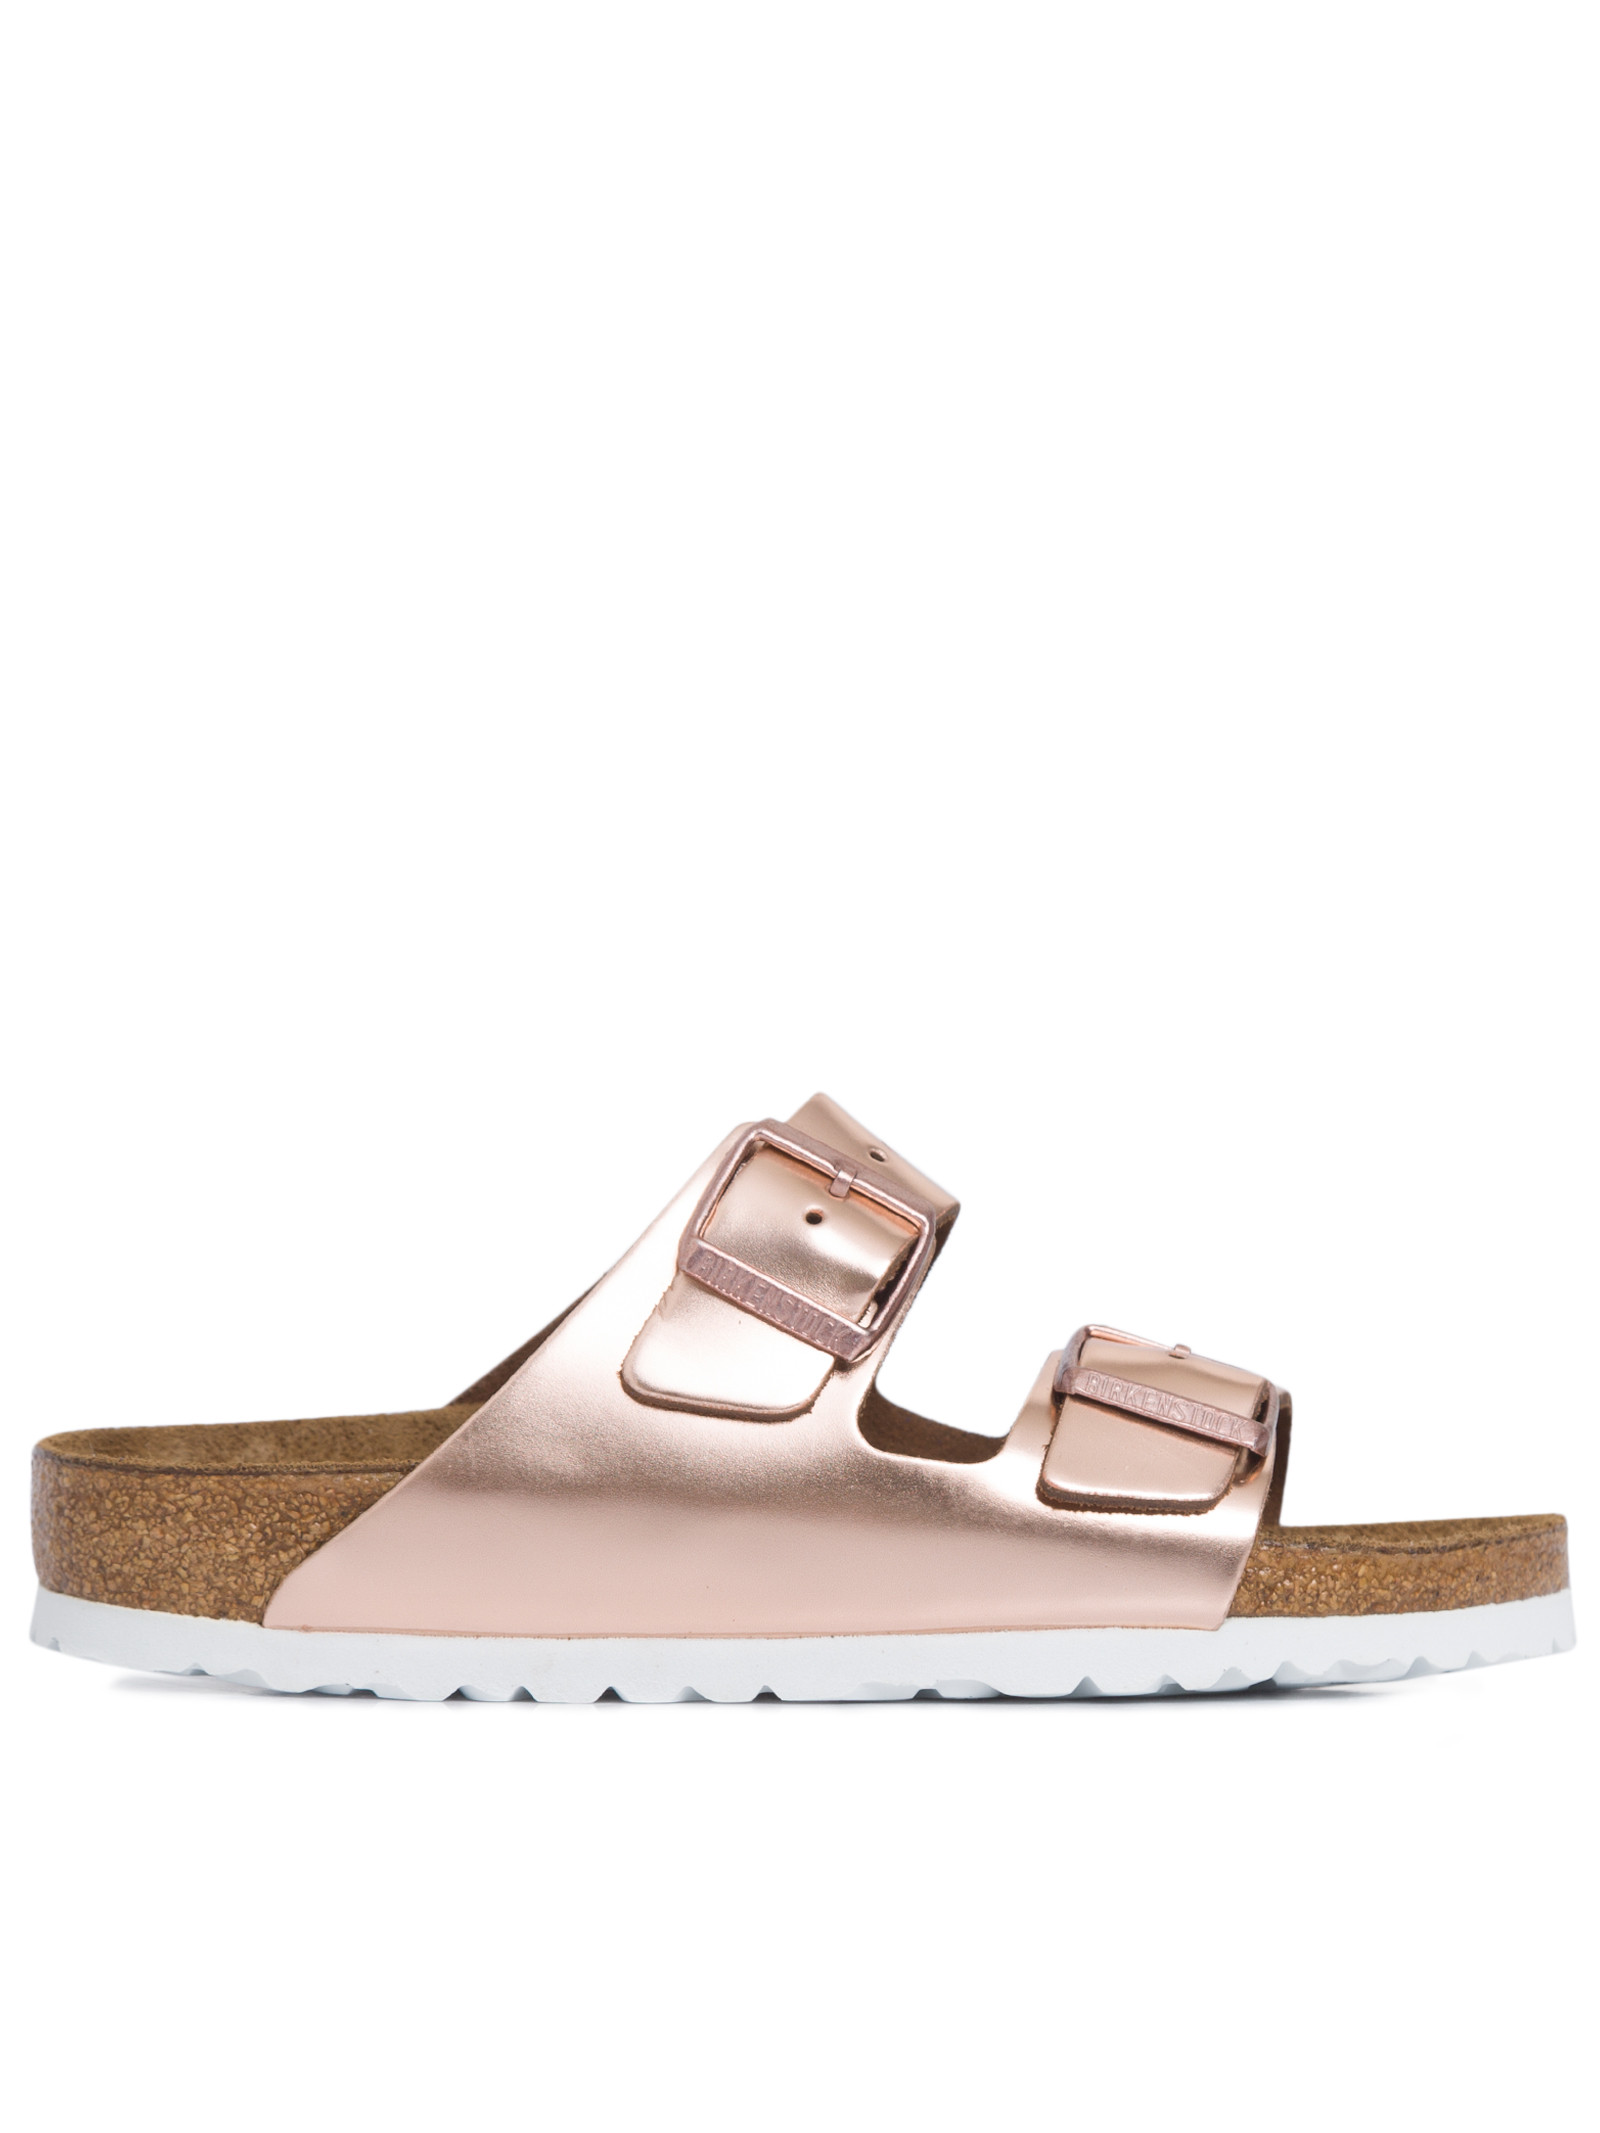 SANDÁLIA FEMININA ARIZONA METALLIC COPPER - ROSA